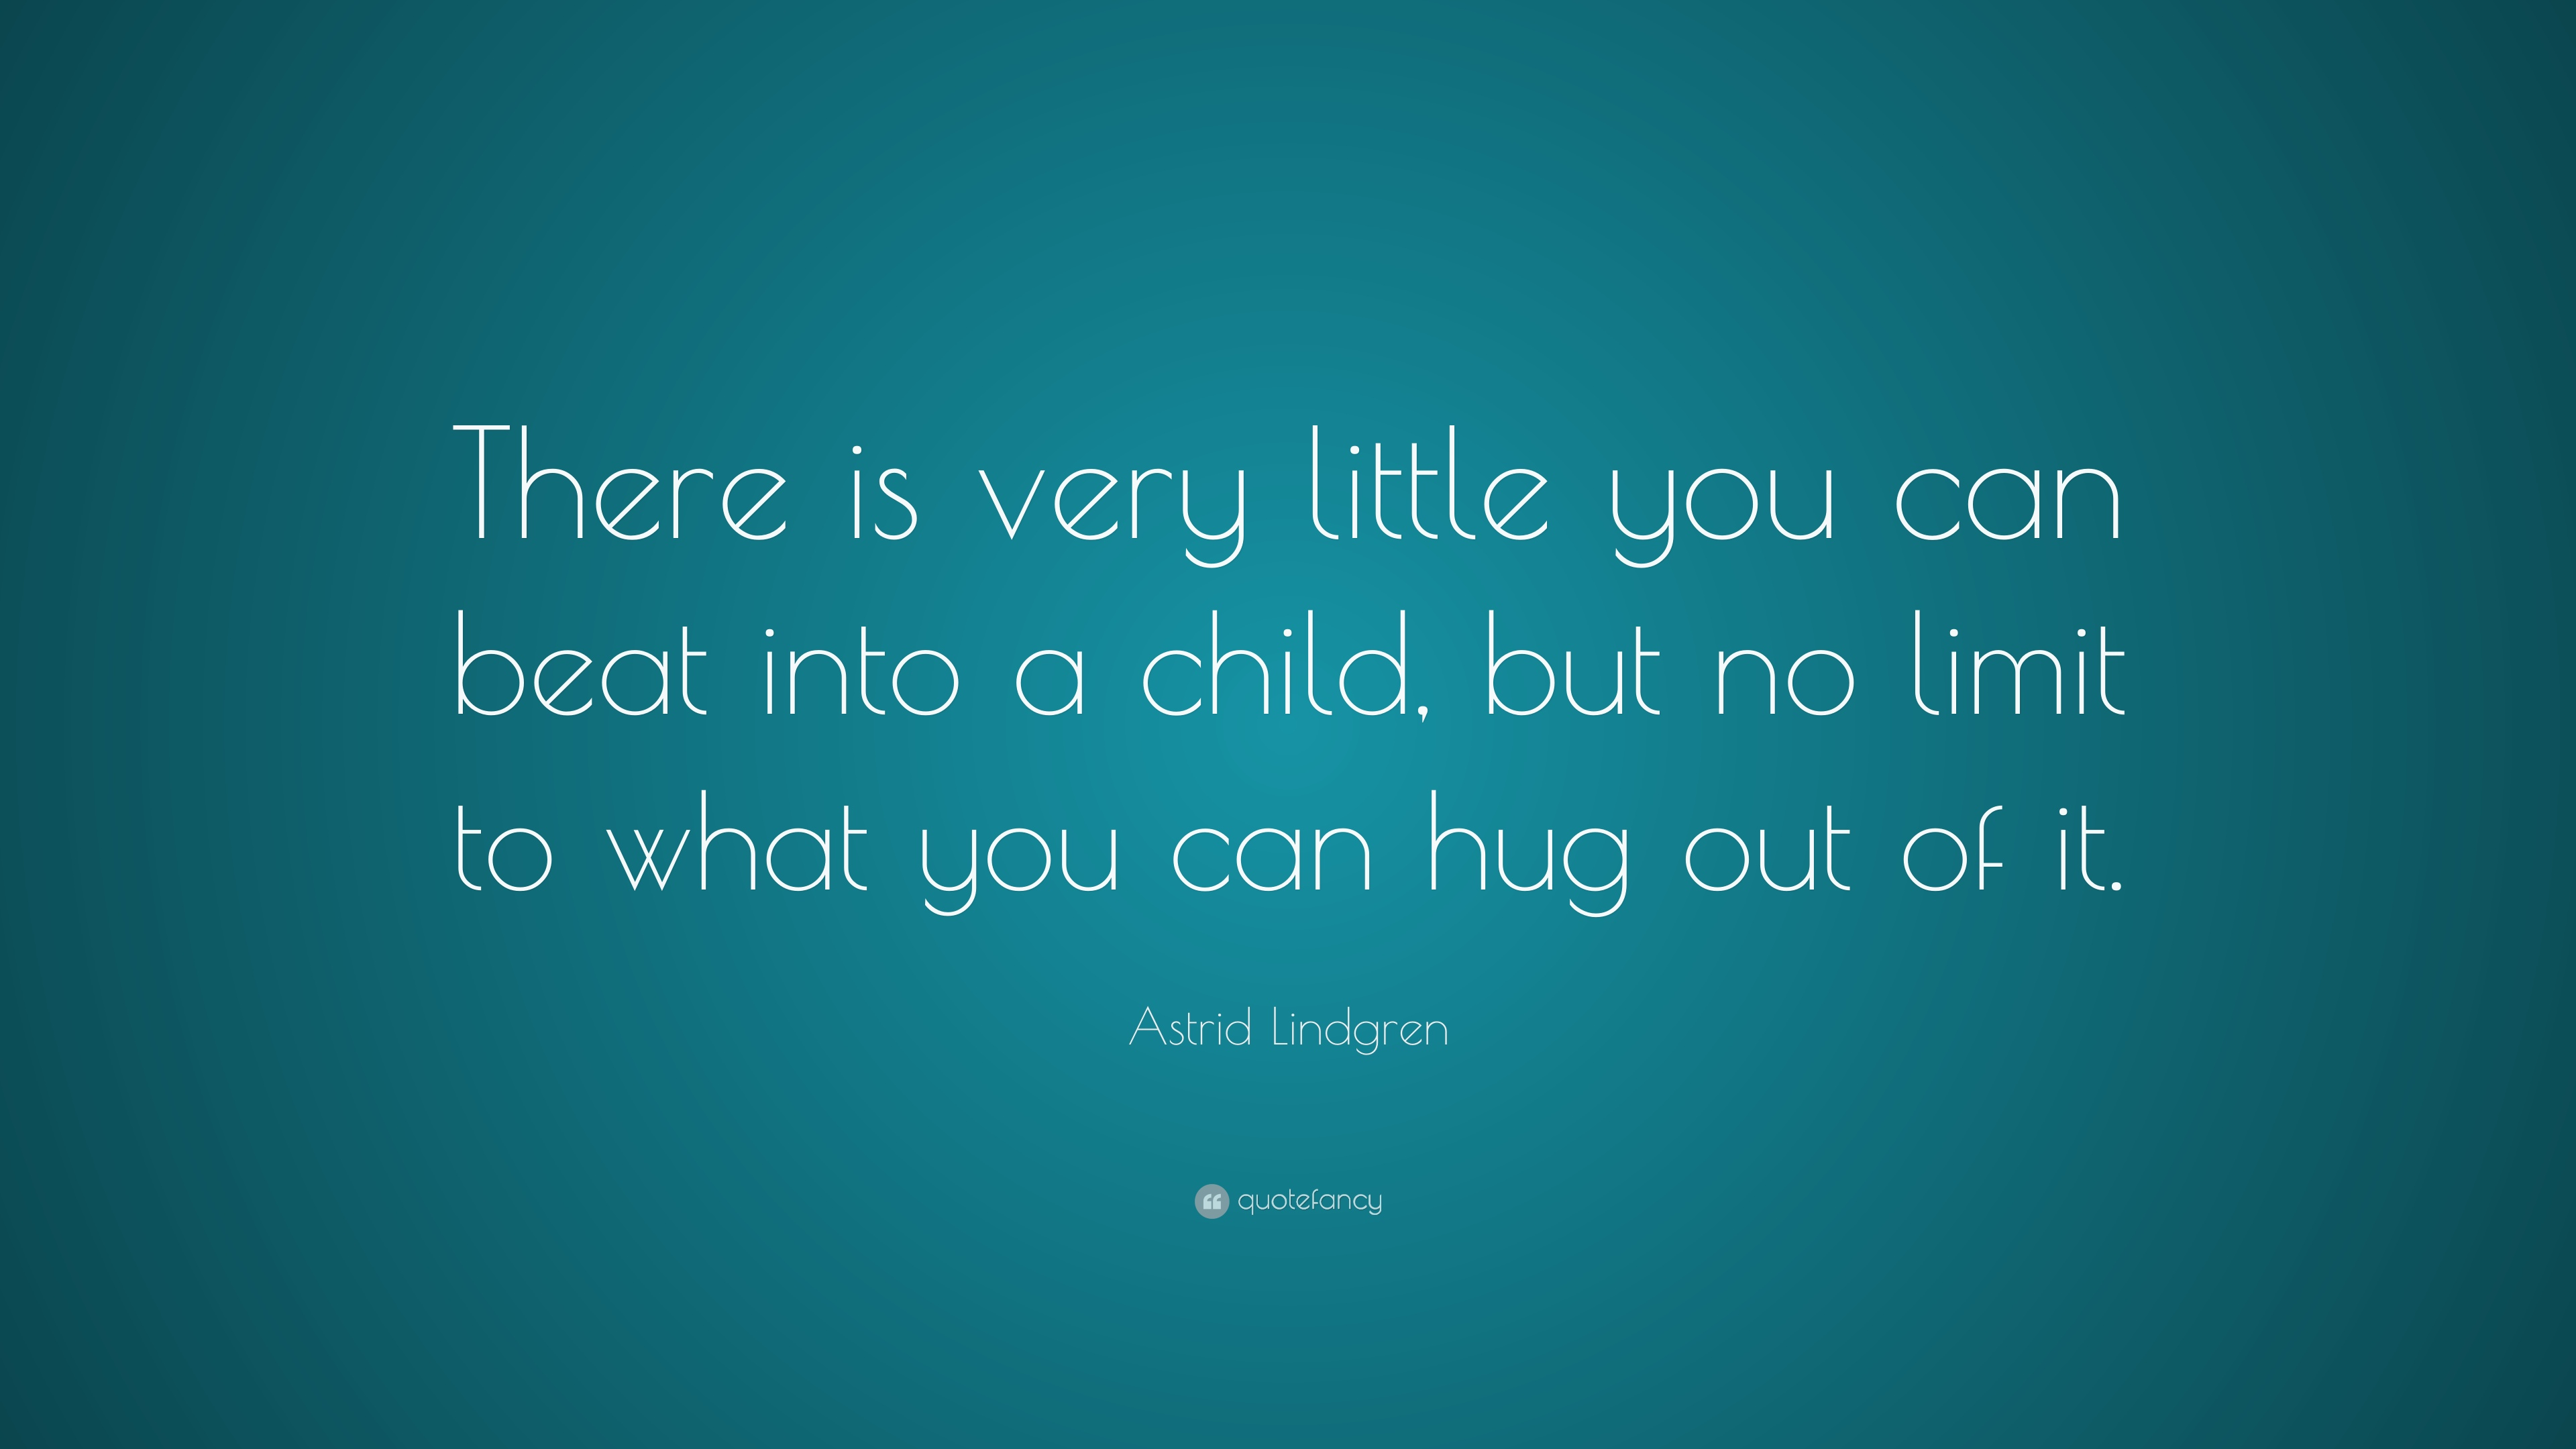 Love Hug Wallpapers With Quotes Astrid Lindgren Quotes 18 Wallpapers Quotefancy